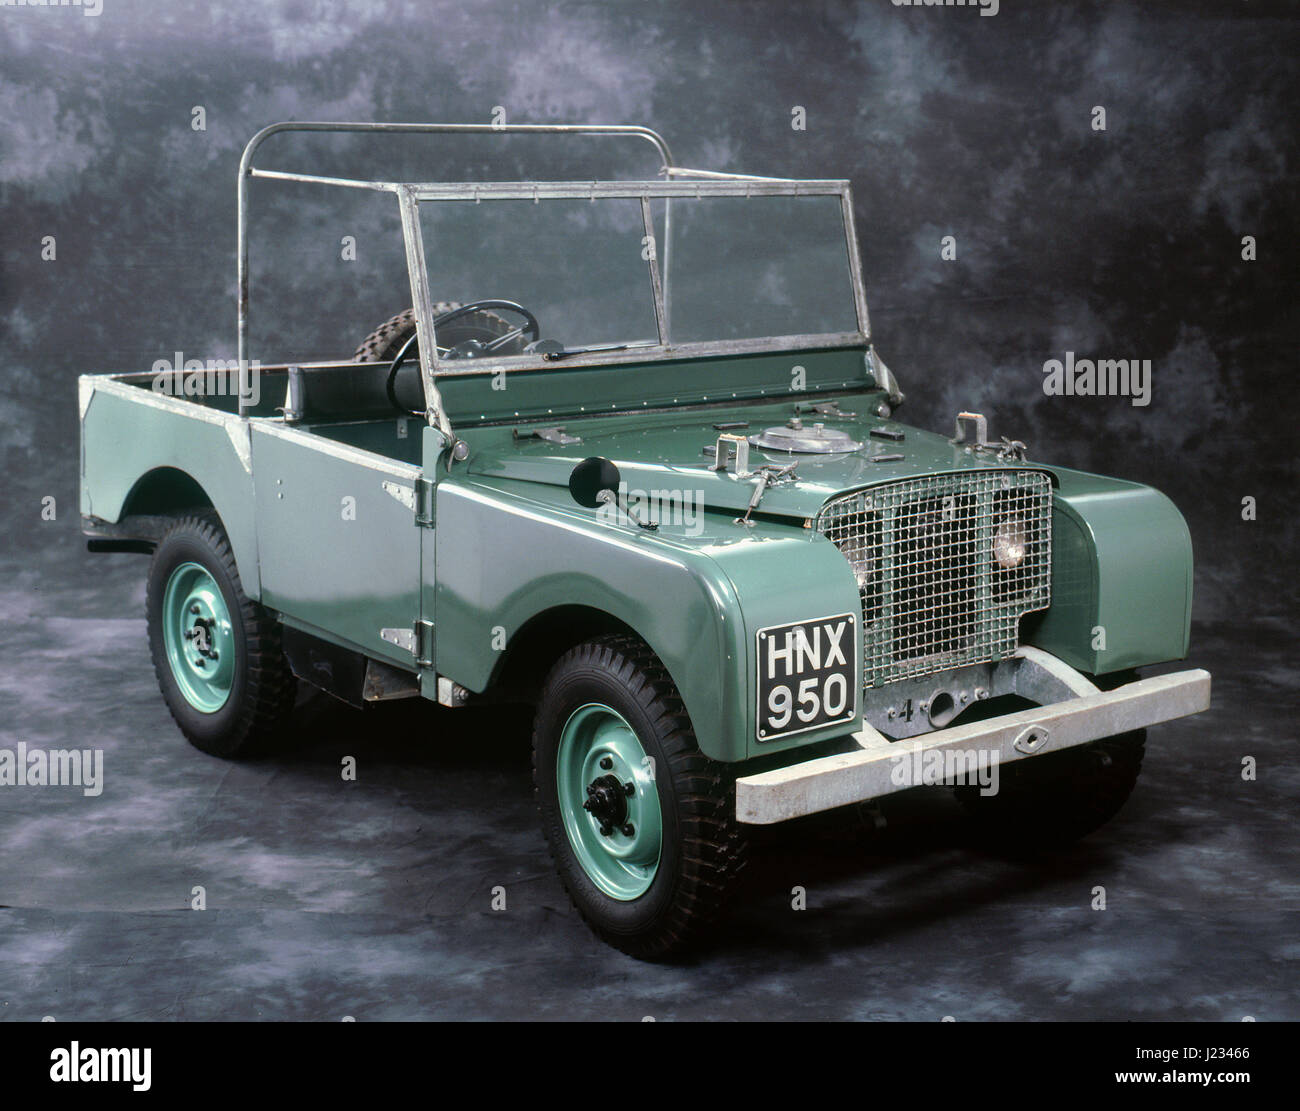 classic land rover stock photos classic land rover stock. Black Bedroom Furniture Sets. Home Design Ideas